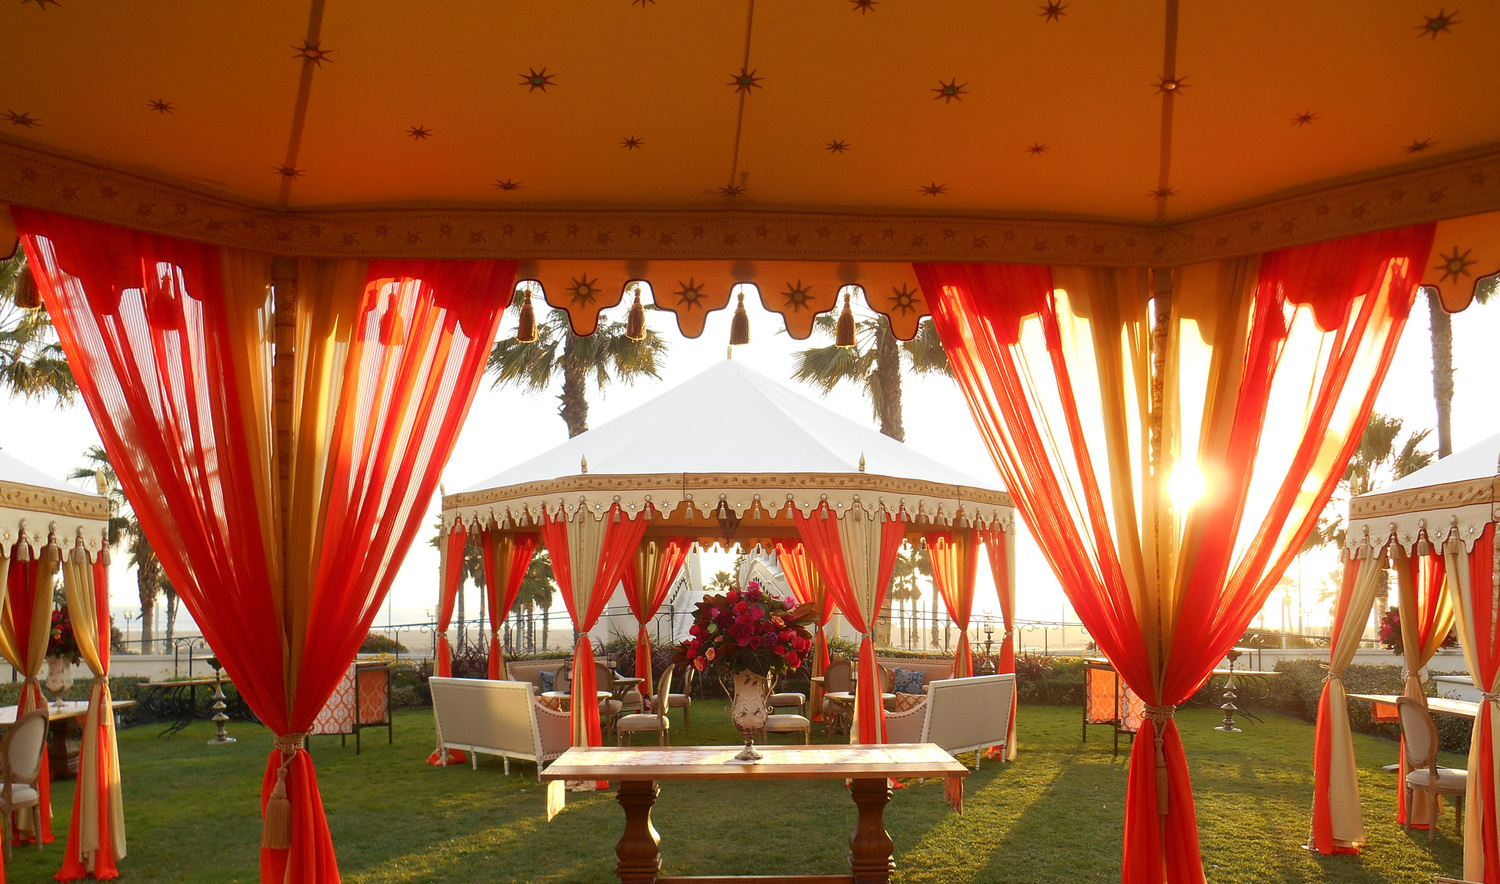 Raj Tents Luxury Tent Rentals Los Angeles Social Events Luxury Tenting And Decor For Birthdays Garden Partiers Bat Bar Mitzvah And More